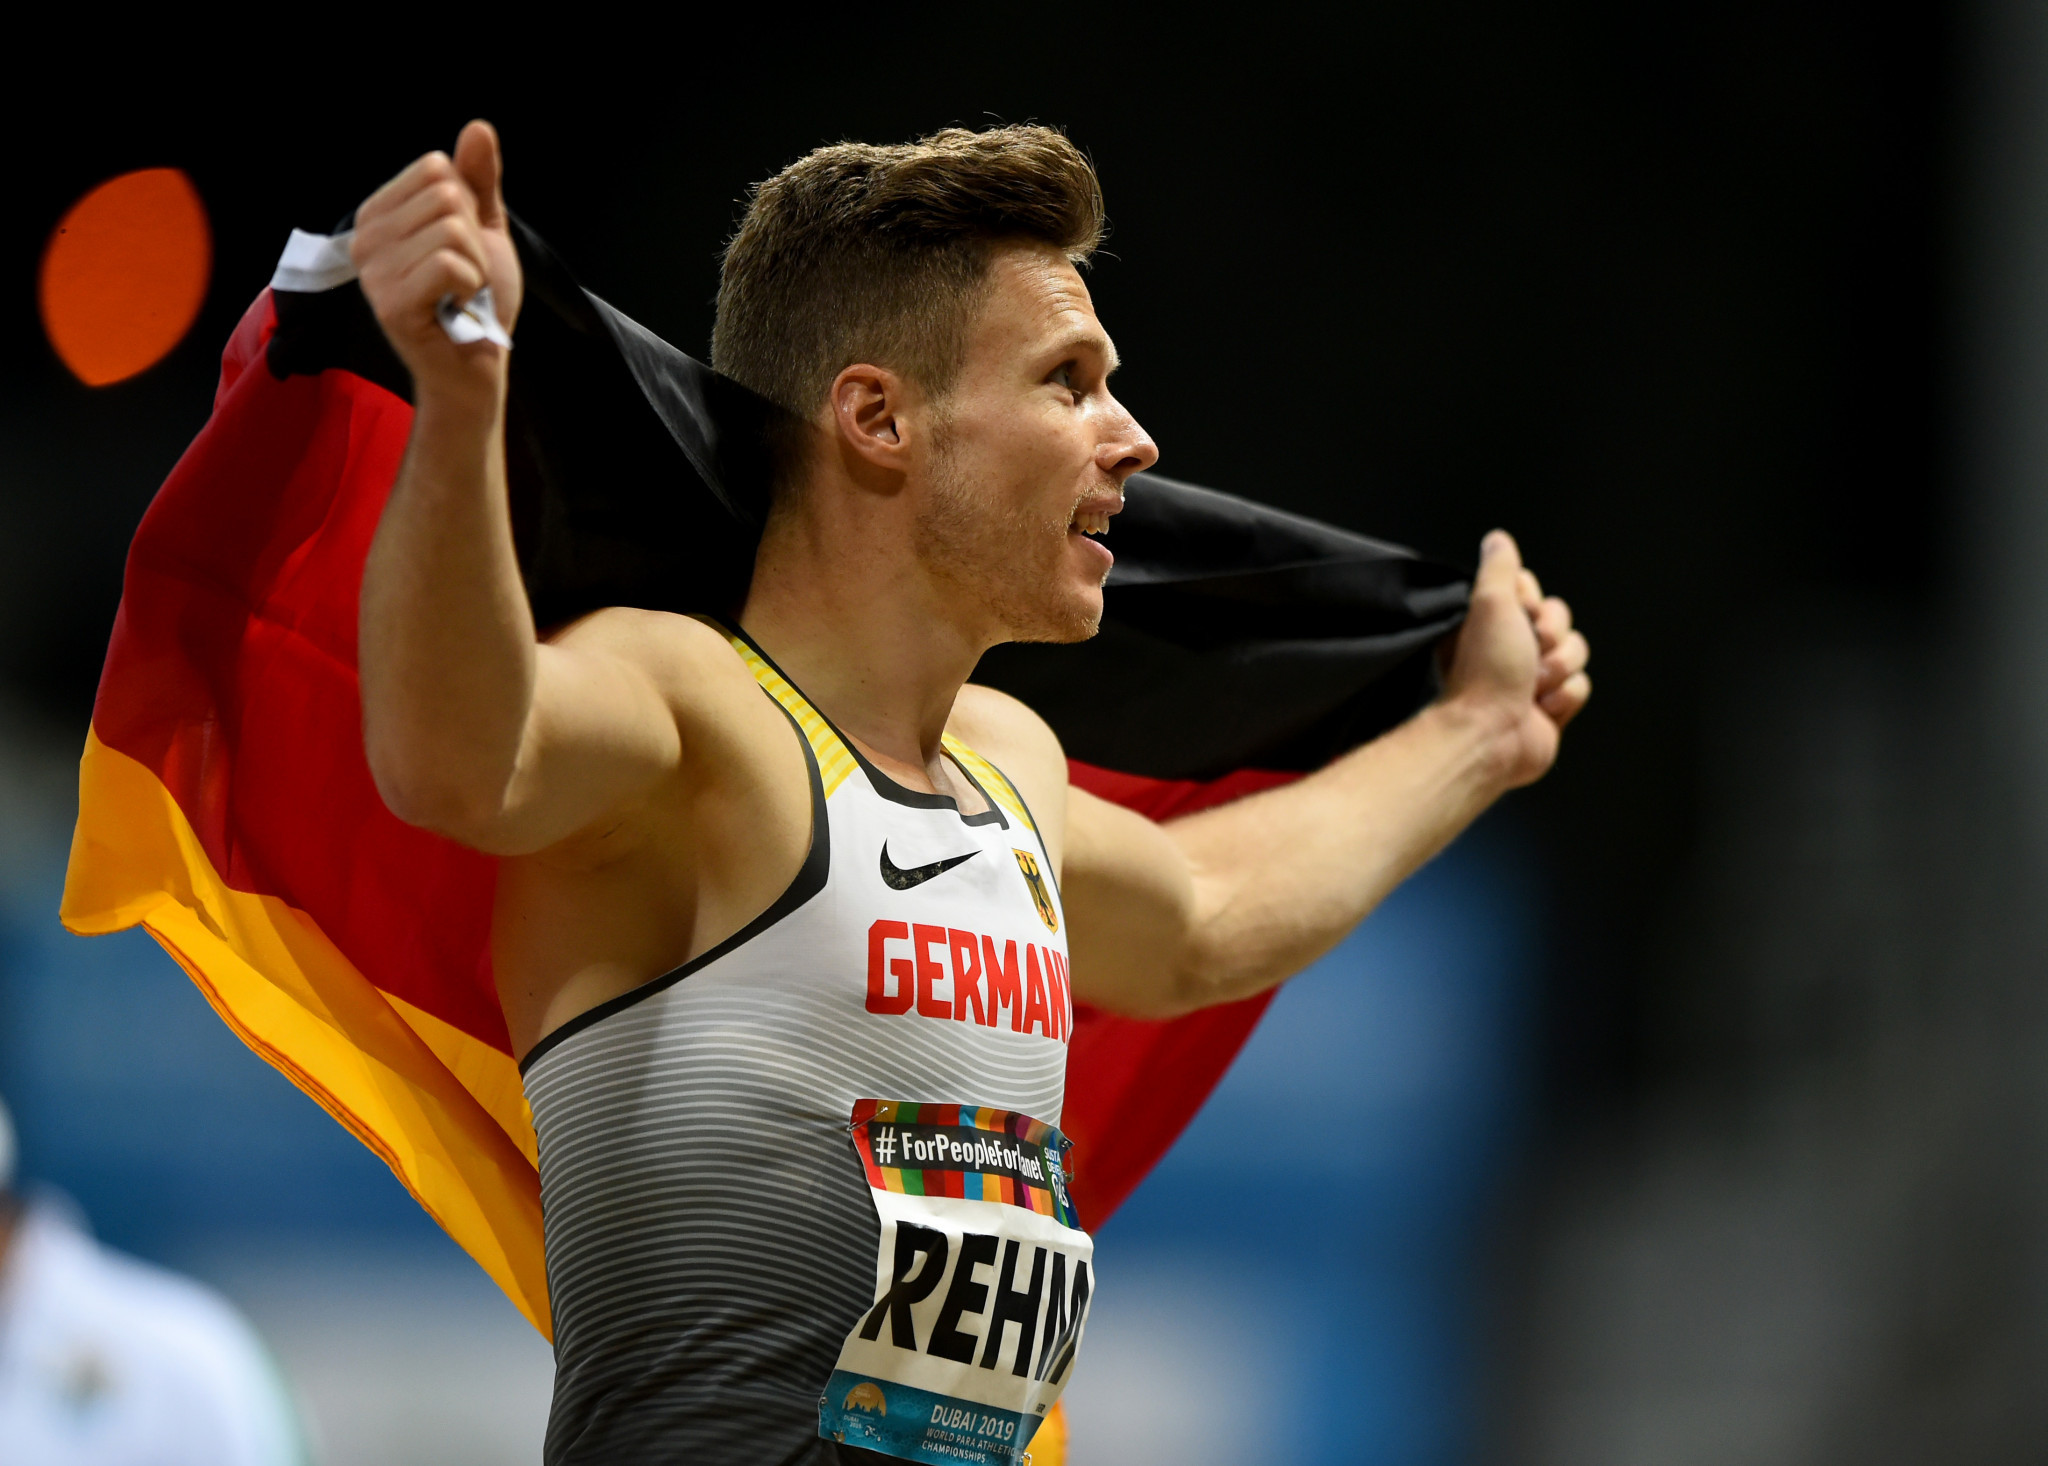 Germany's Markus Rehm was among the stand-out performers today at the World Para Athletics Championships in Dubai ©Getty Images